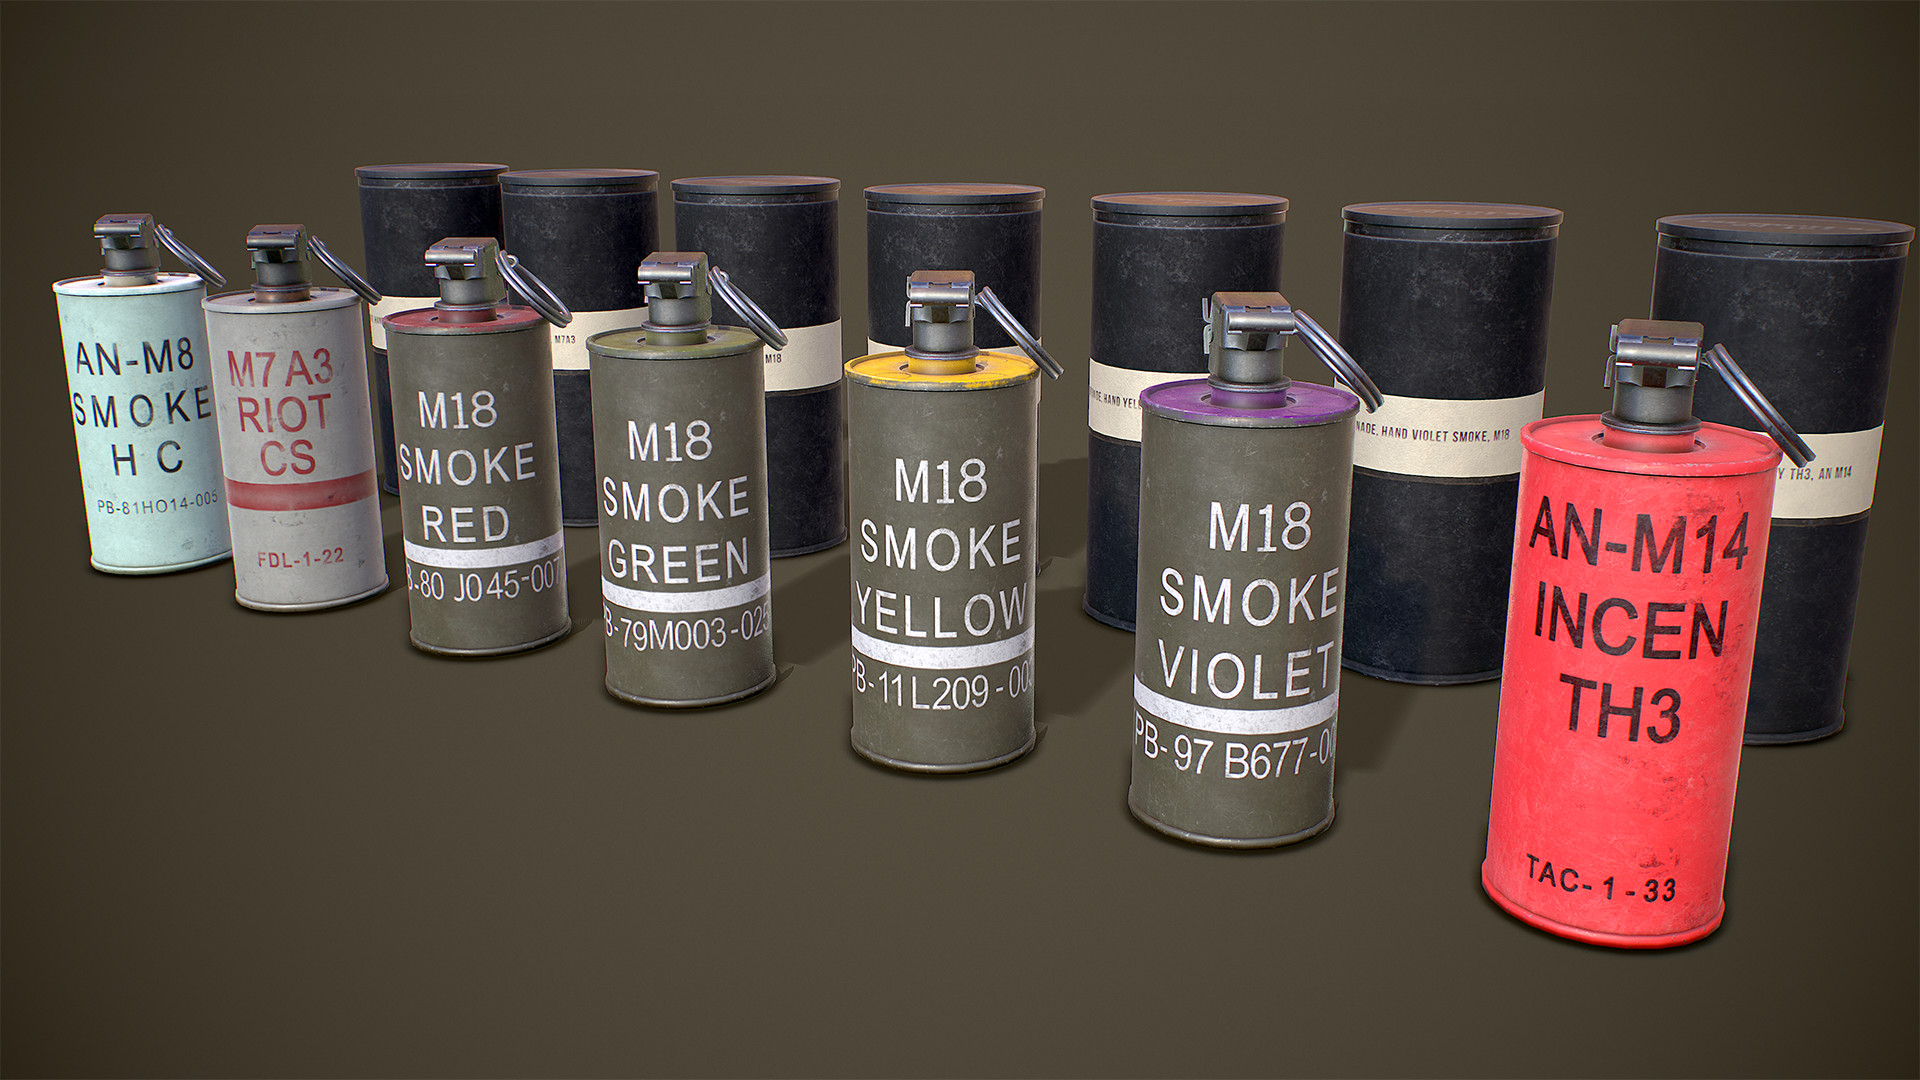 ArtStation - AN M18 Smoke Grenade and other ammunition, Rama Marines